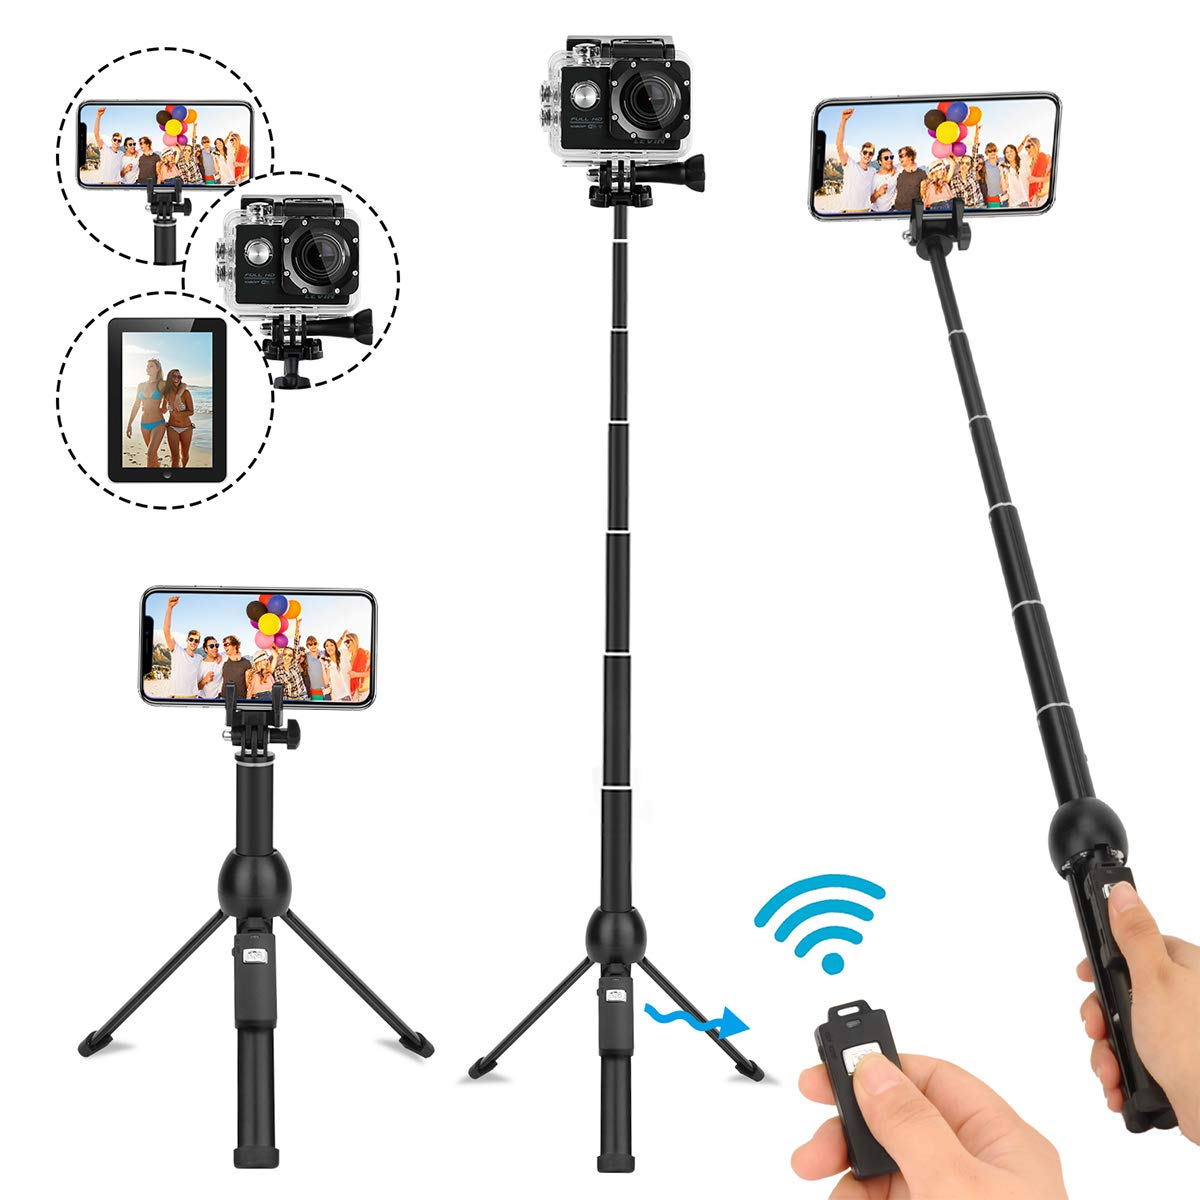 Selfie Stick Tripod,45 Inch Extendable Selfie Stick Tripod with Wireless Remote Control,Compatible with iPhone 6 7 8 X Plus,Samsung Galaxy S9 Note8, Gopro by YunTeng